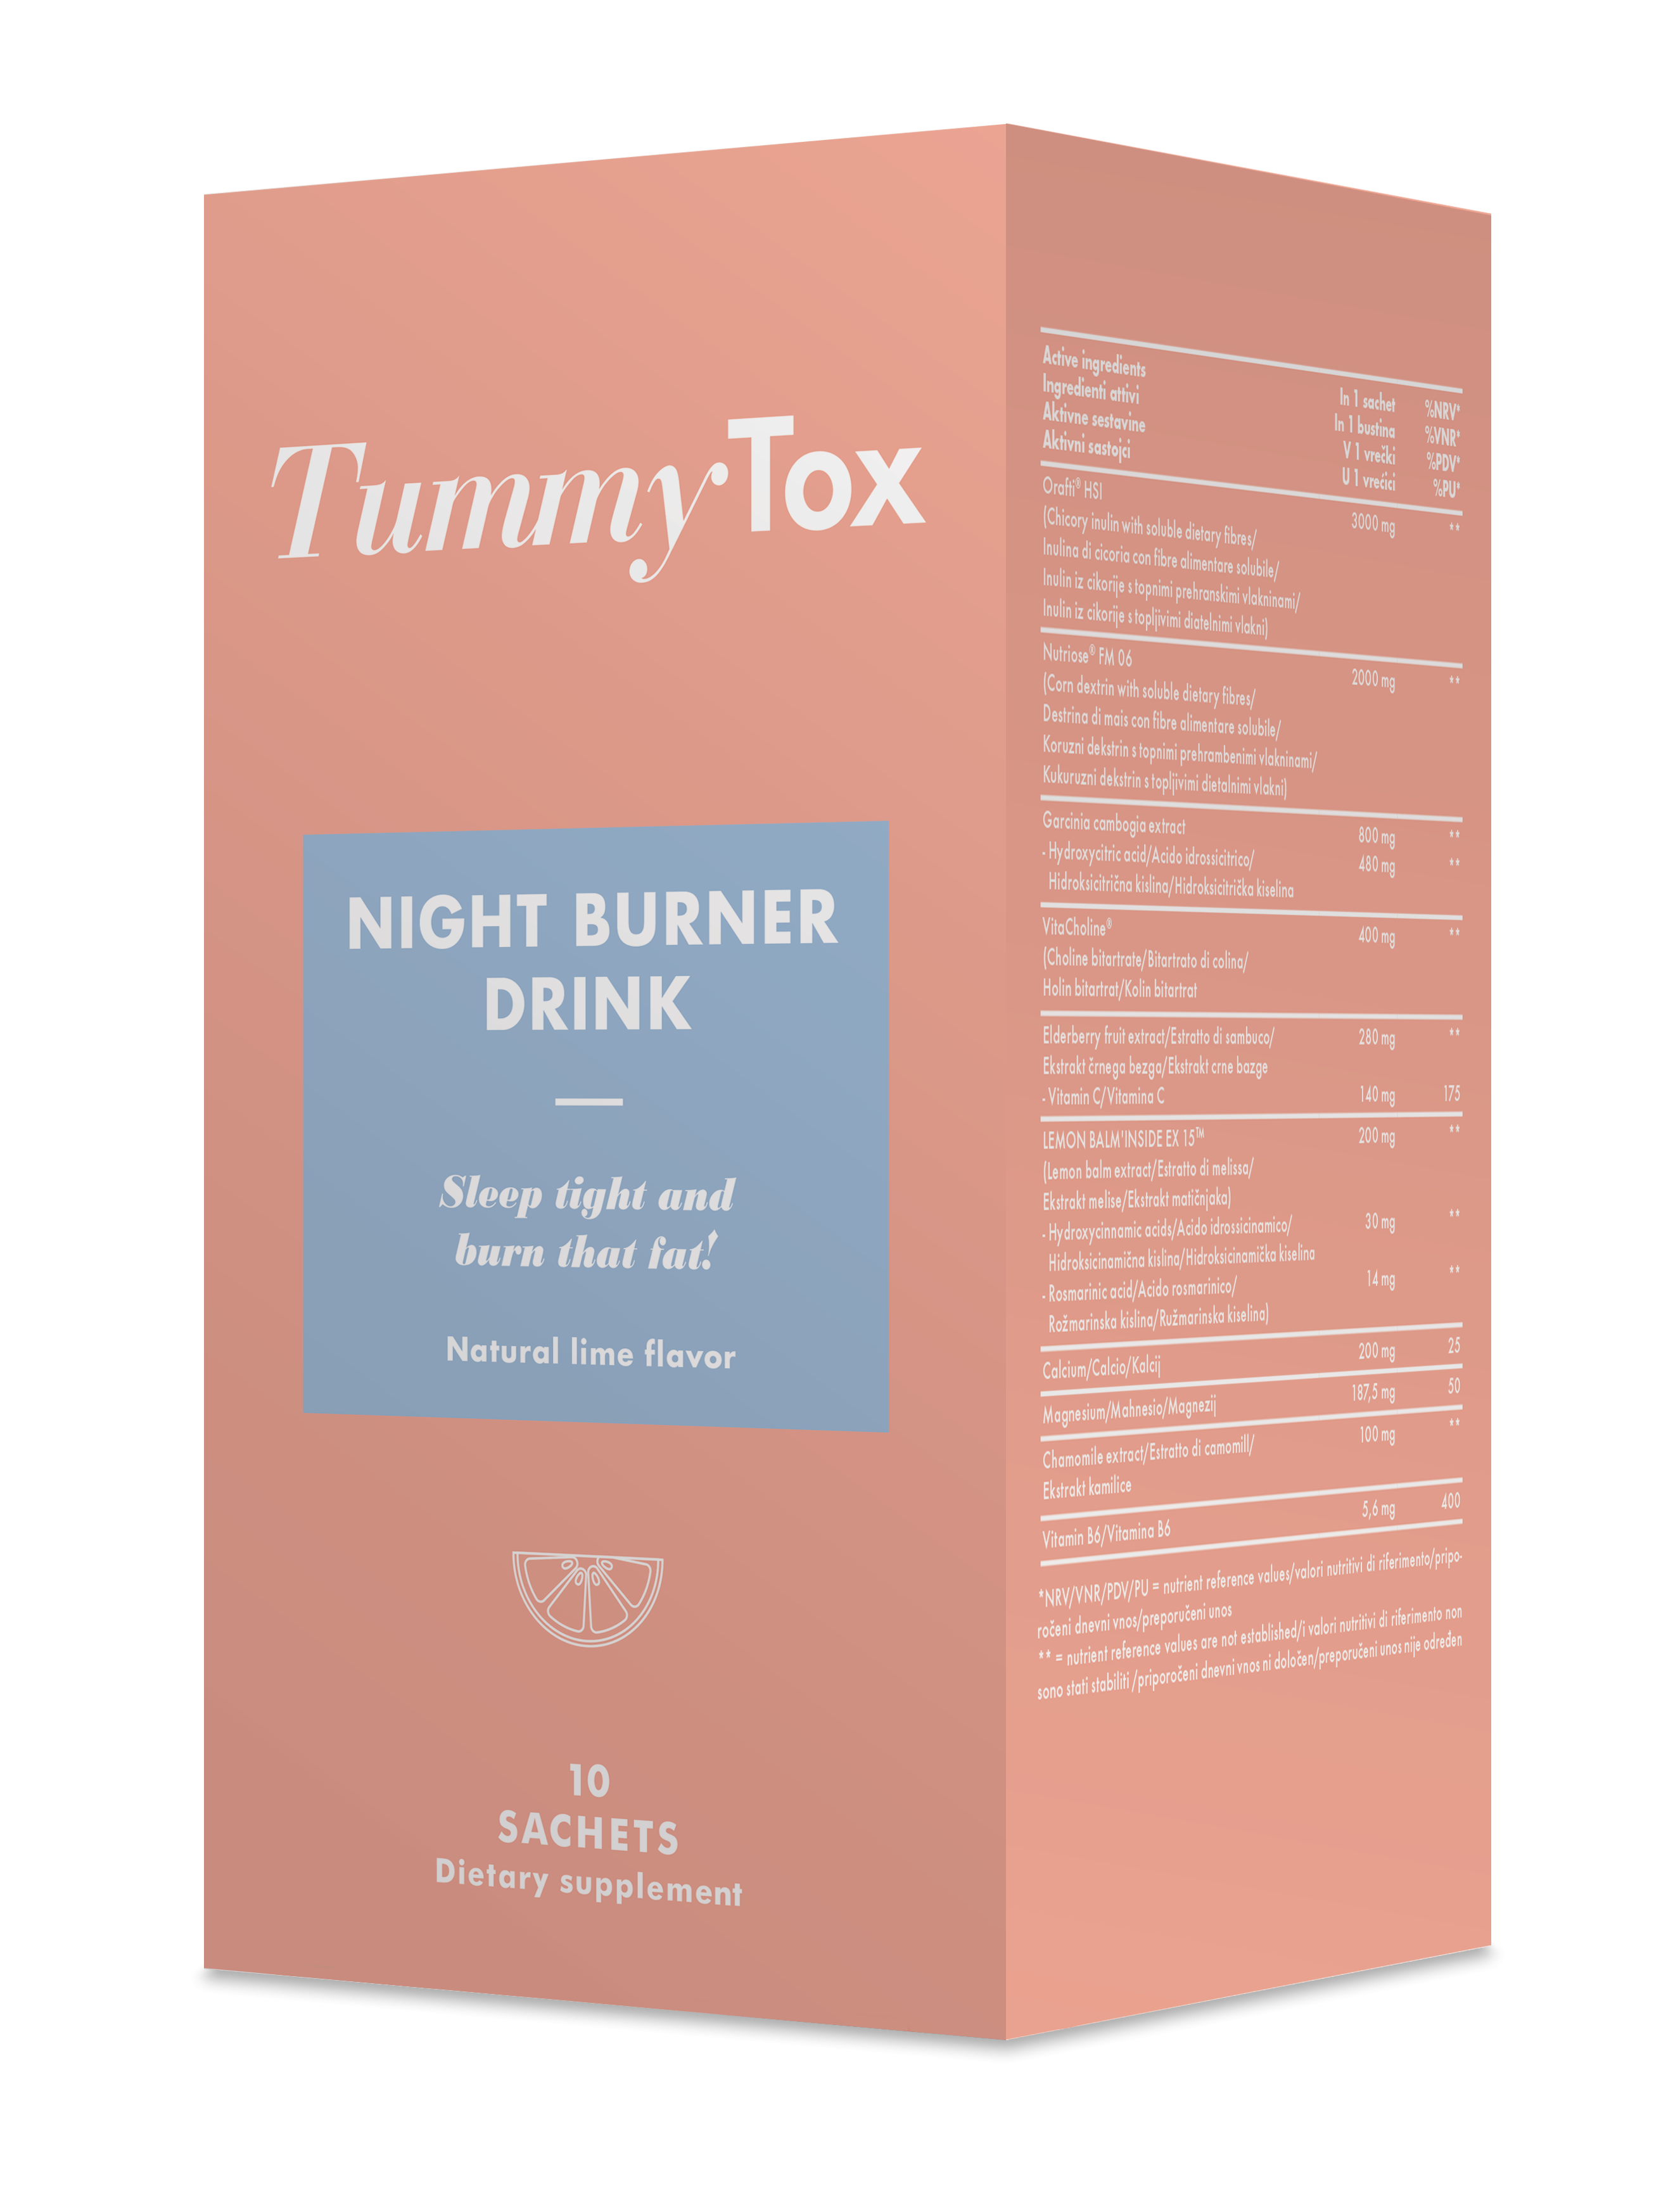 Night burner drink